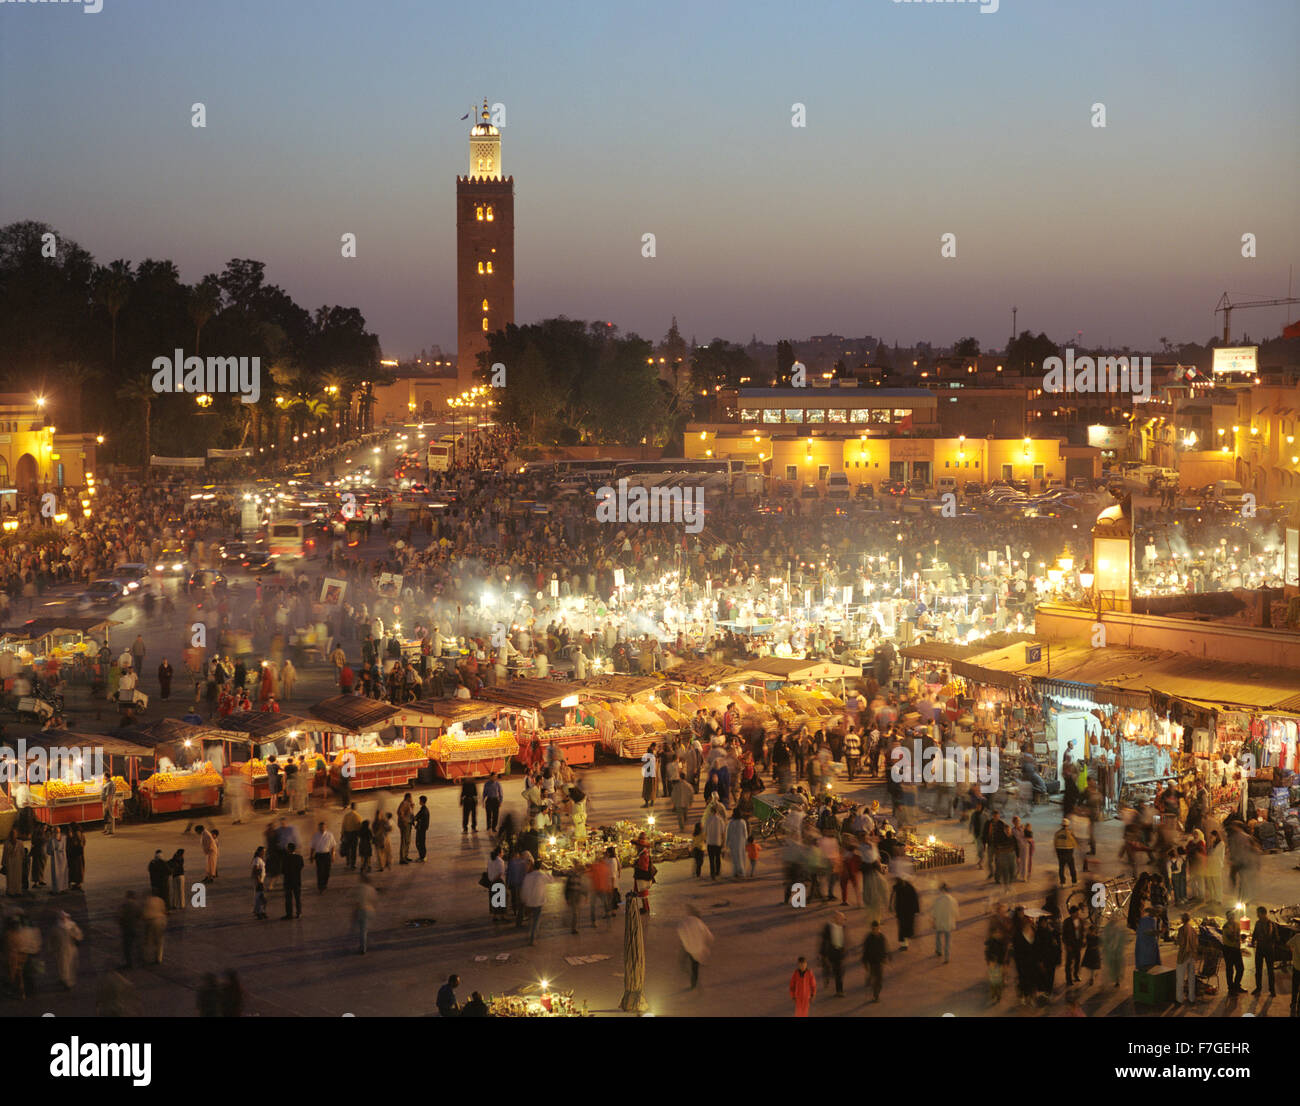 A view of food stalls in the marketplace and public square Place Jema al Fna in Marrakech at dusk. Marrakech, Morocco - Stock Image